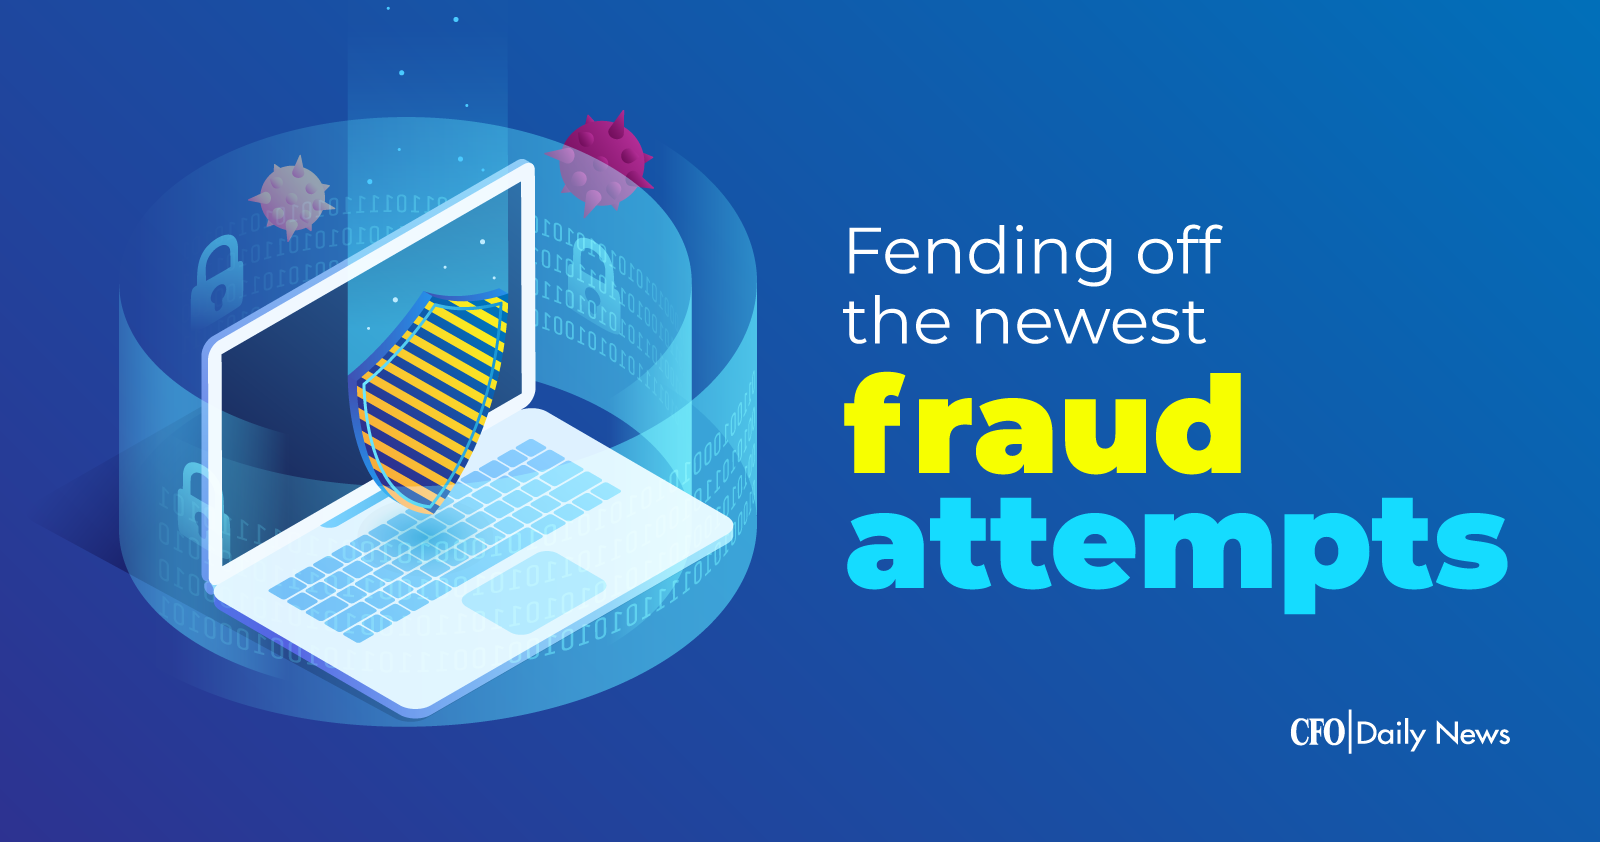 Fending off the newest fraud attempts